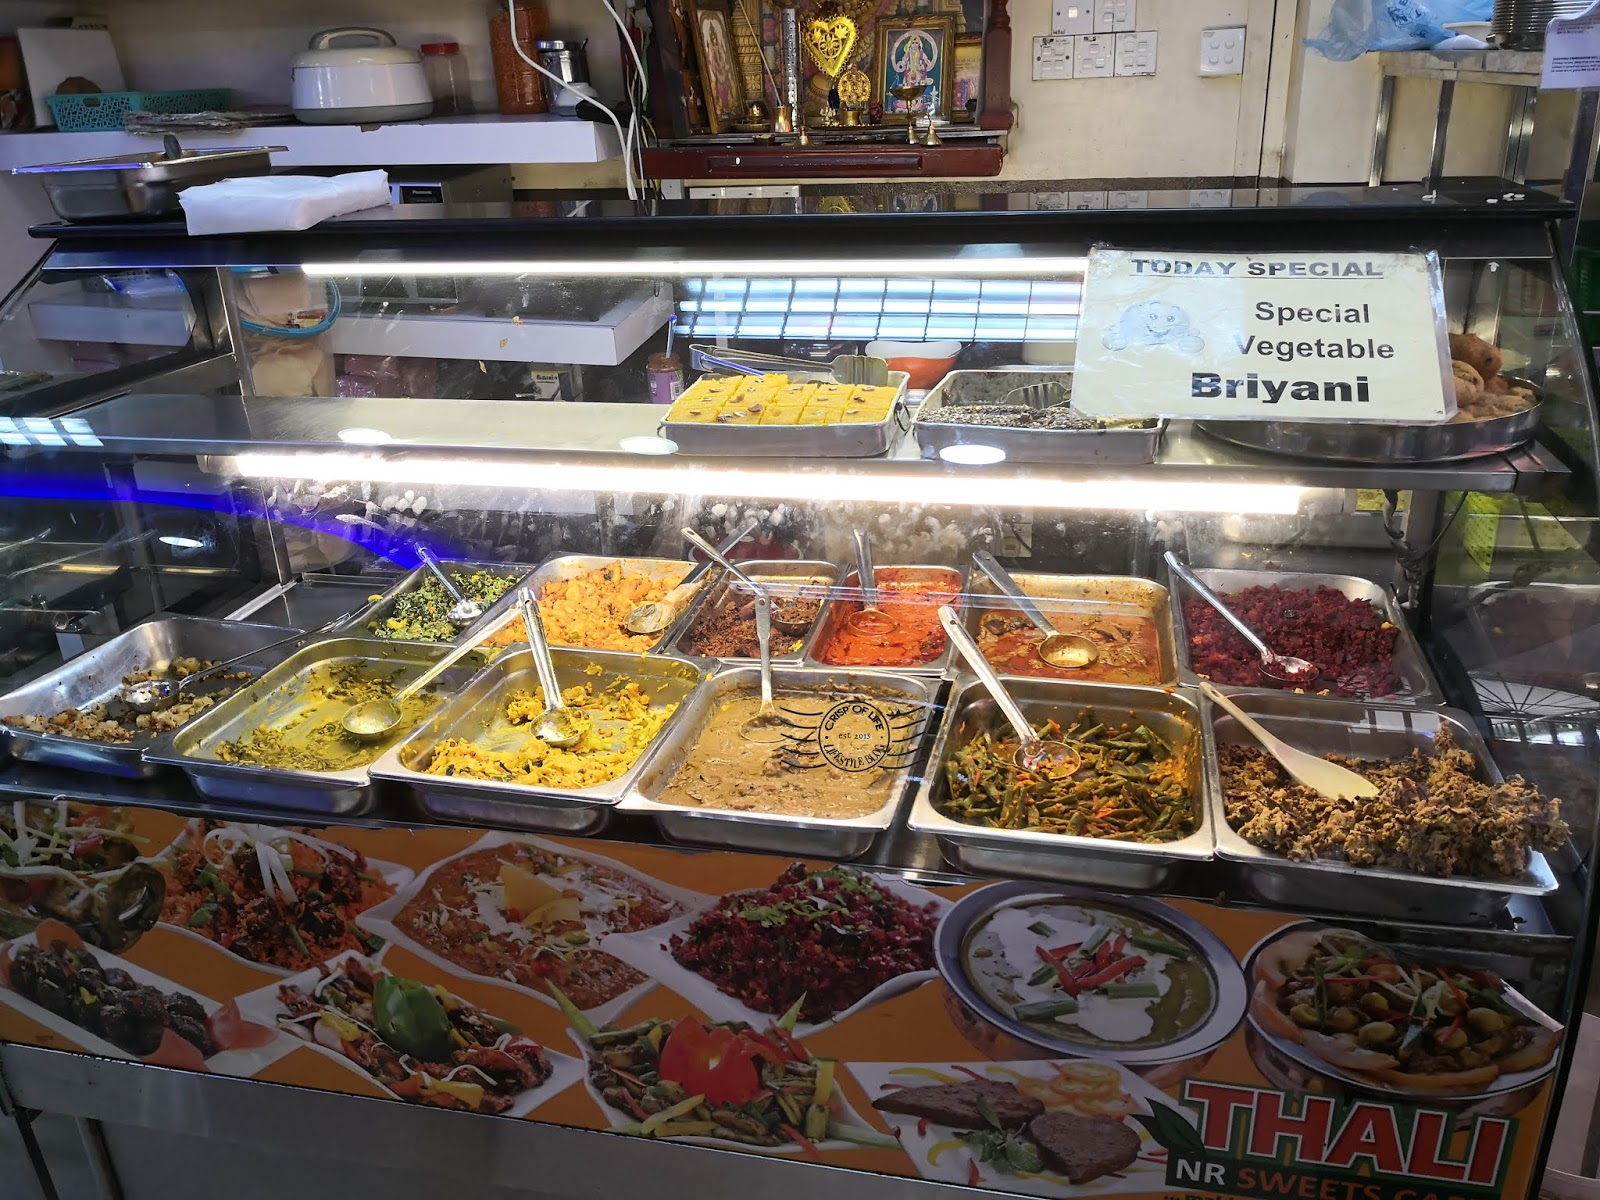 Thali-NR Sweet Cafe at Little India, Lebuh Penang, Georgetown Penang